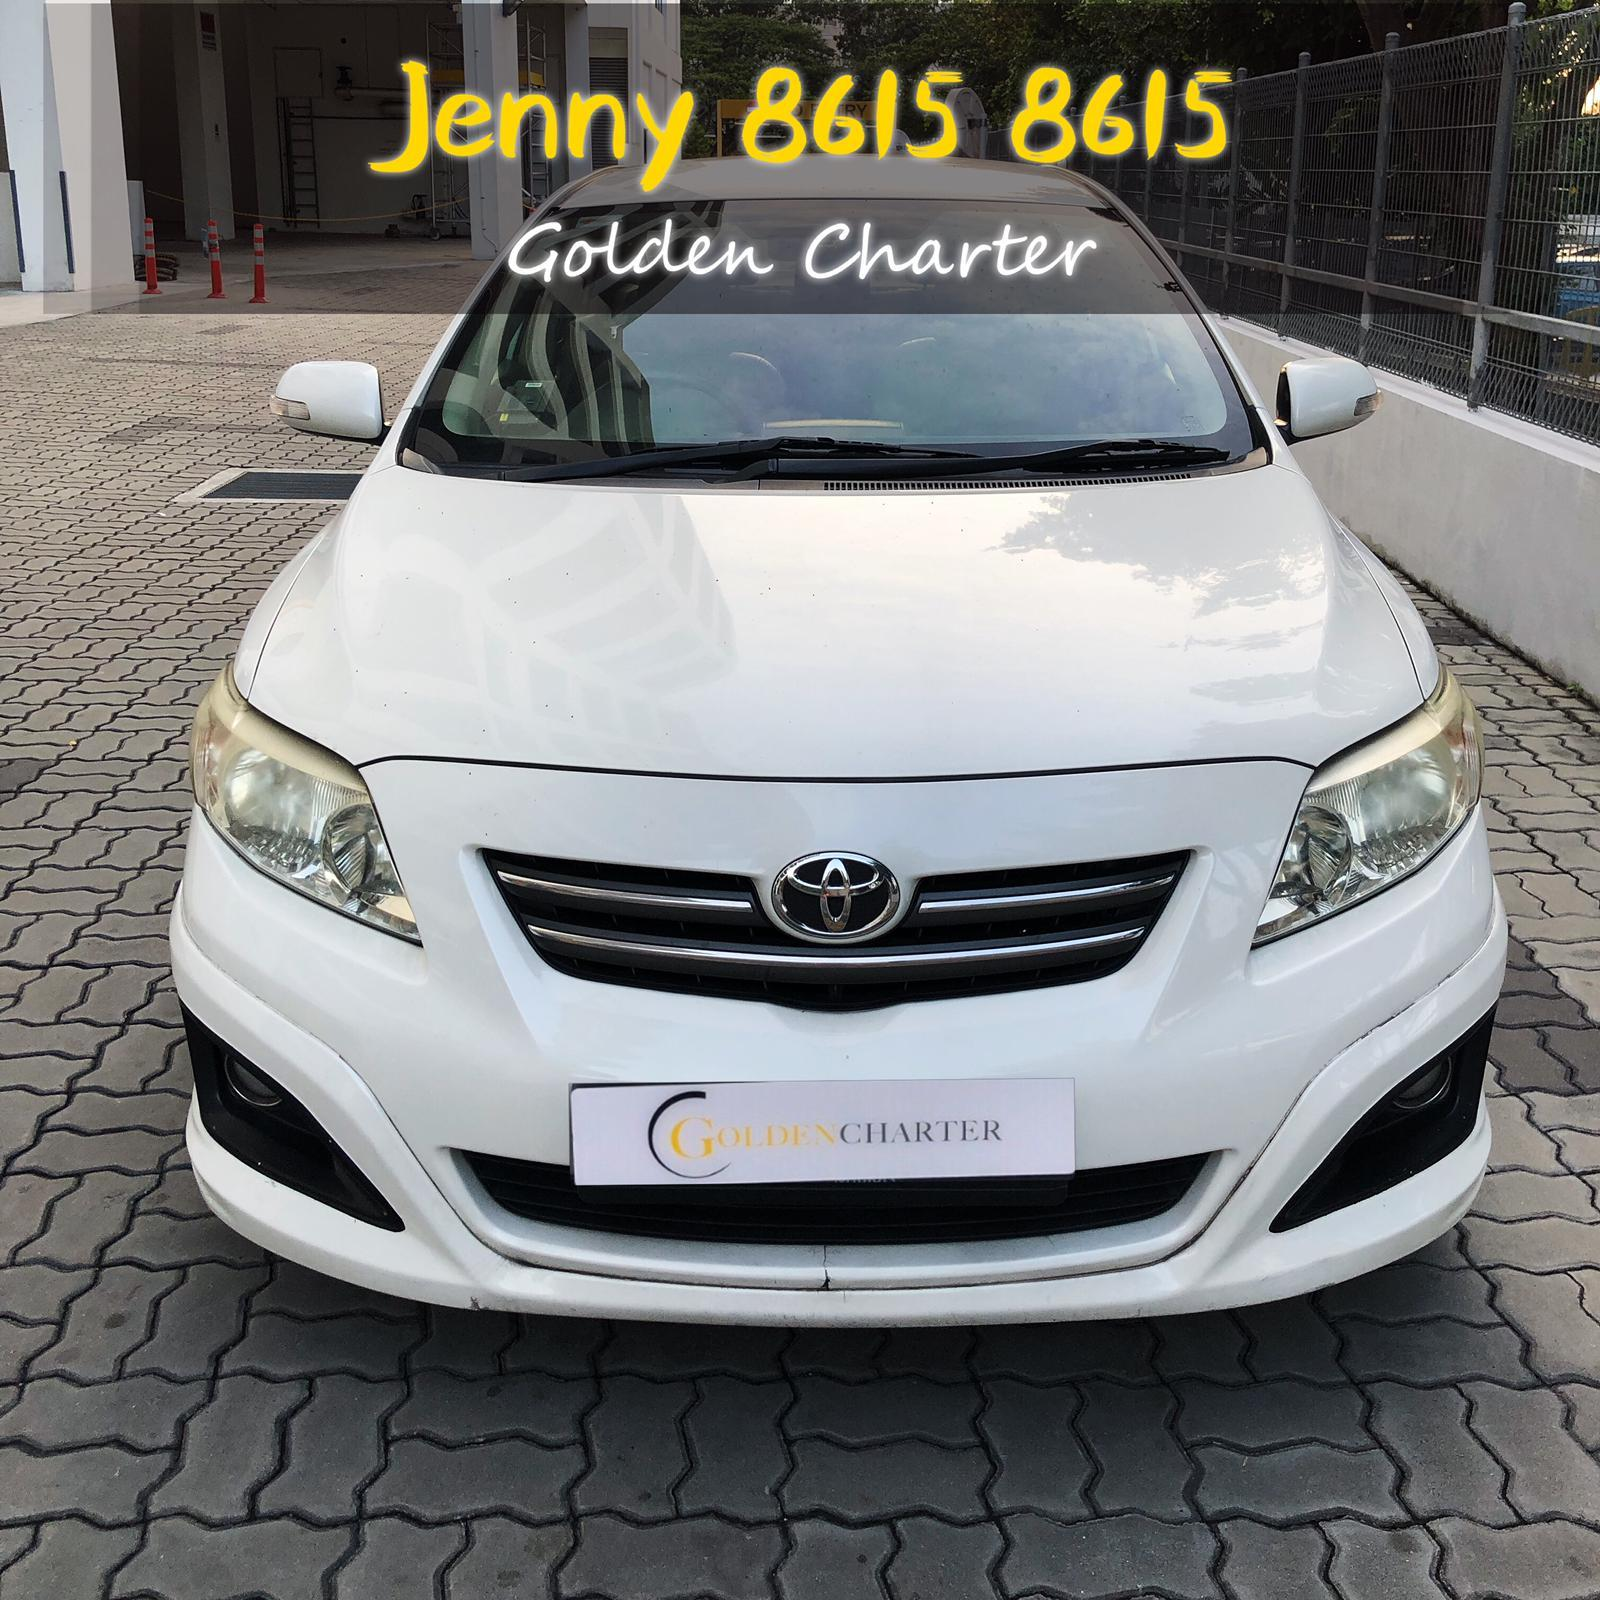 Toyota altis 1.6a cheap car rental suitable for grab,gojel ,tada PHV n personal use.